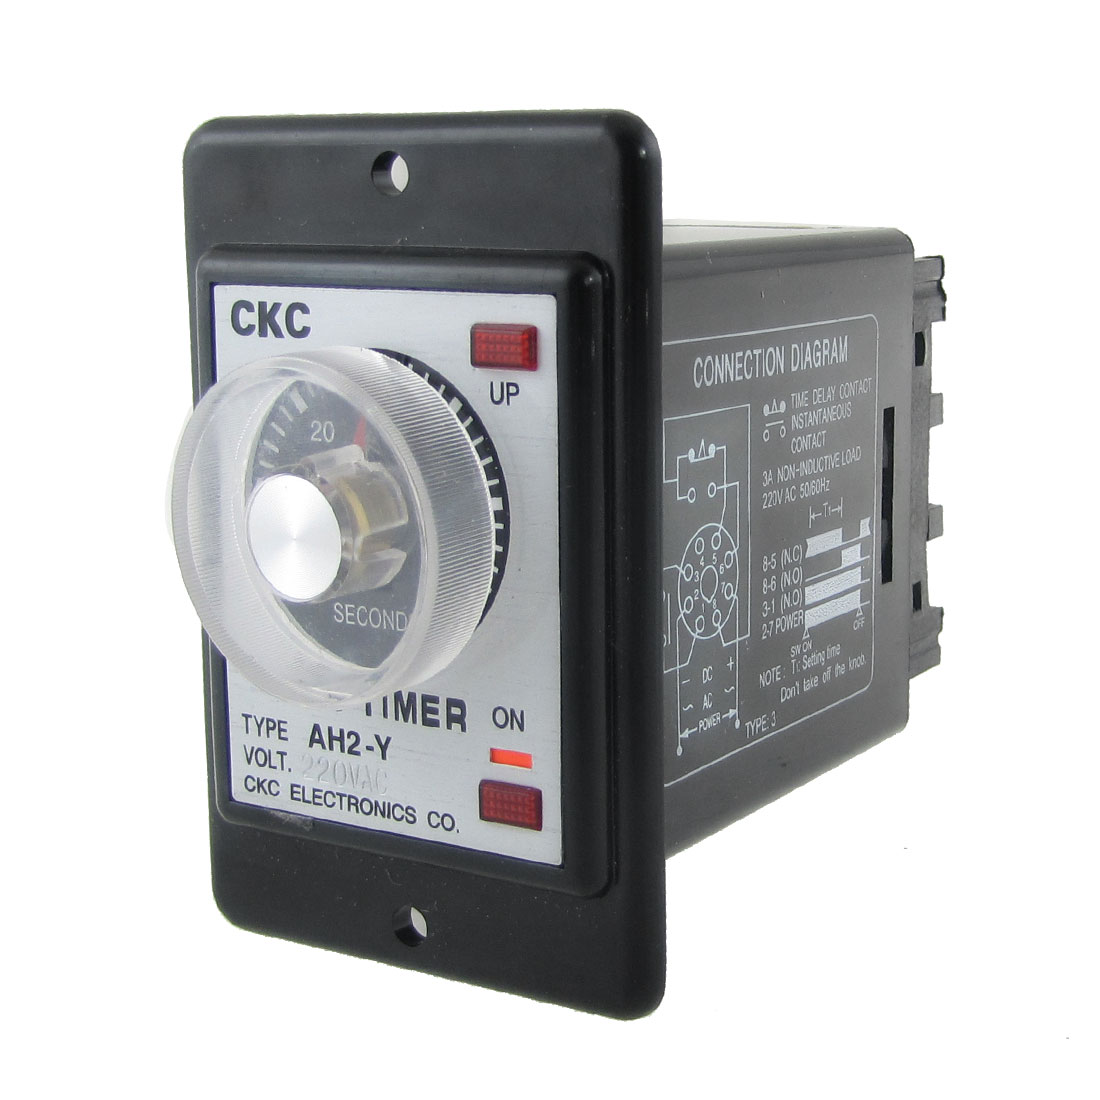 AC 220V 0-60 Seconds Timing Range Power On Timer Time Relay with Socket